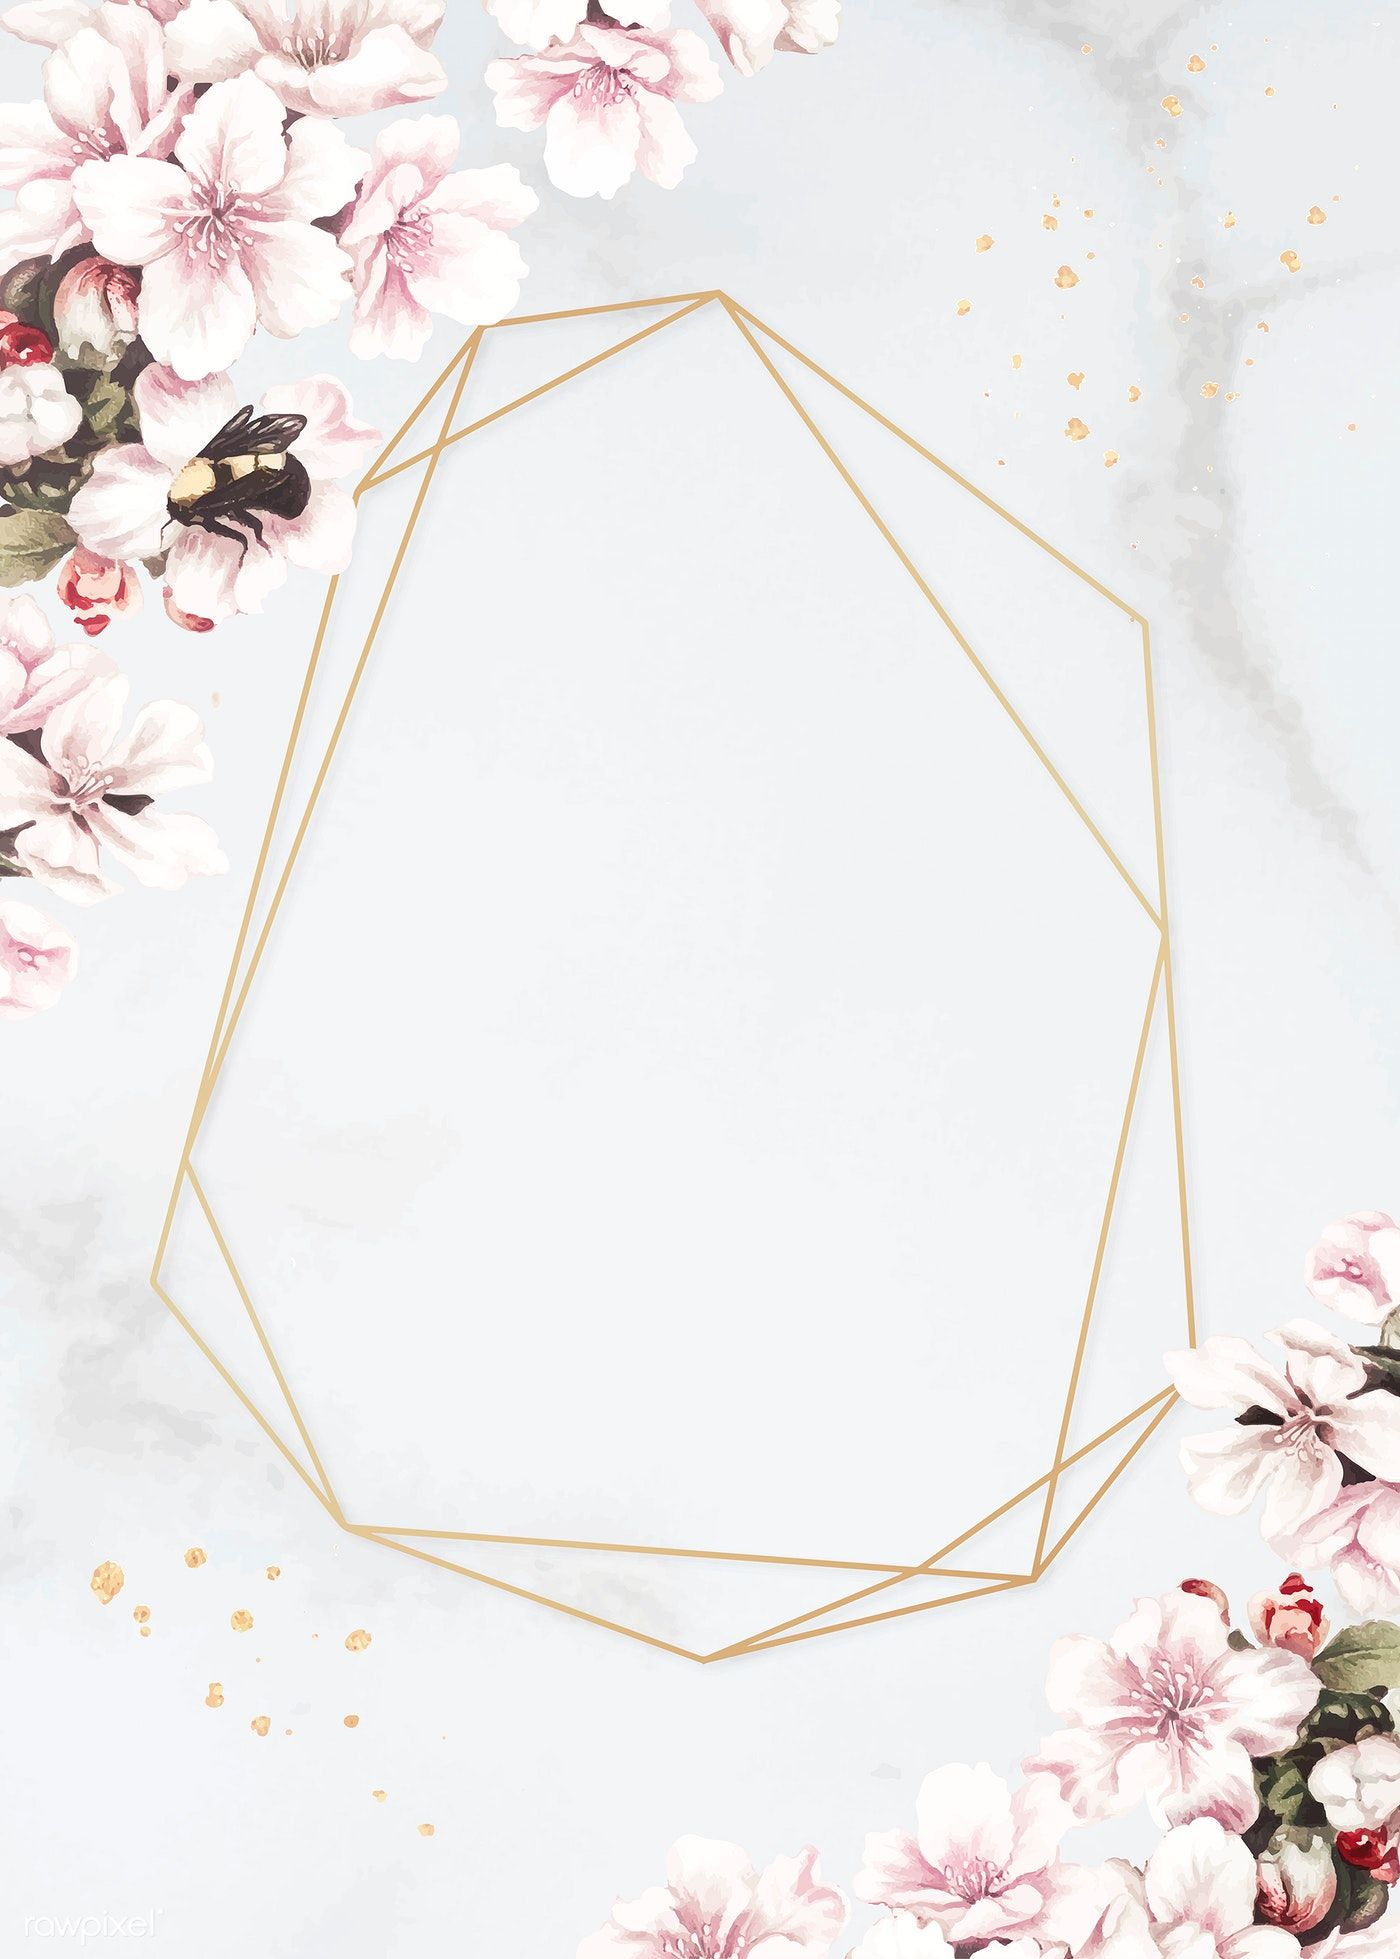 Download premium vector of Blank floral golden frame